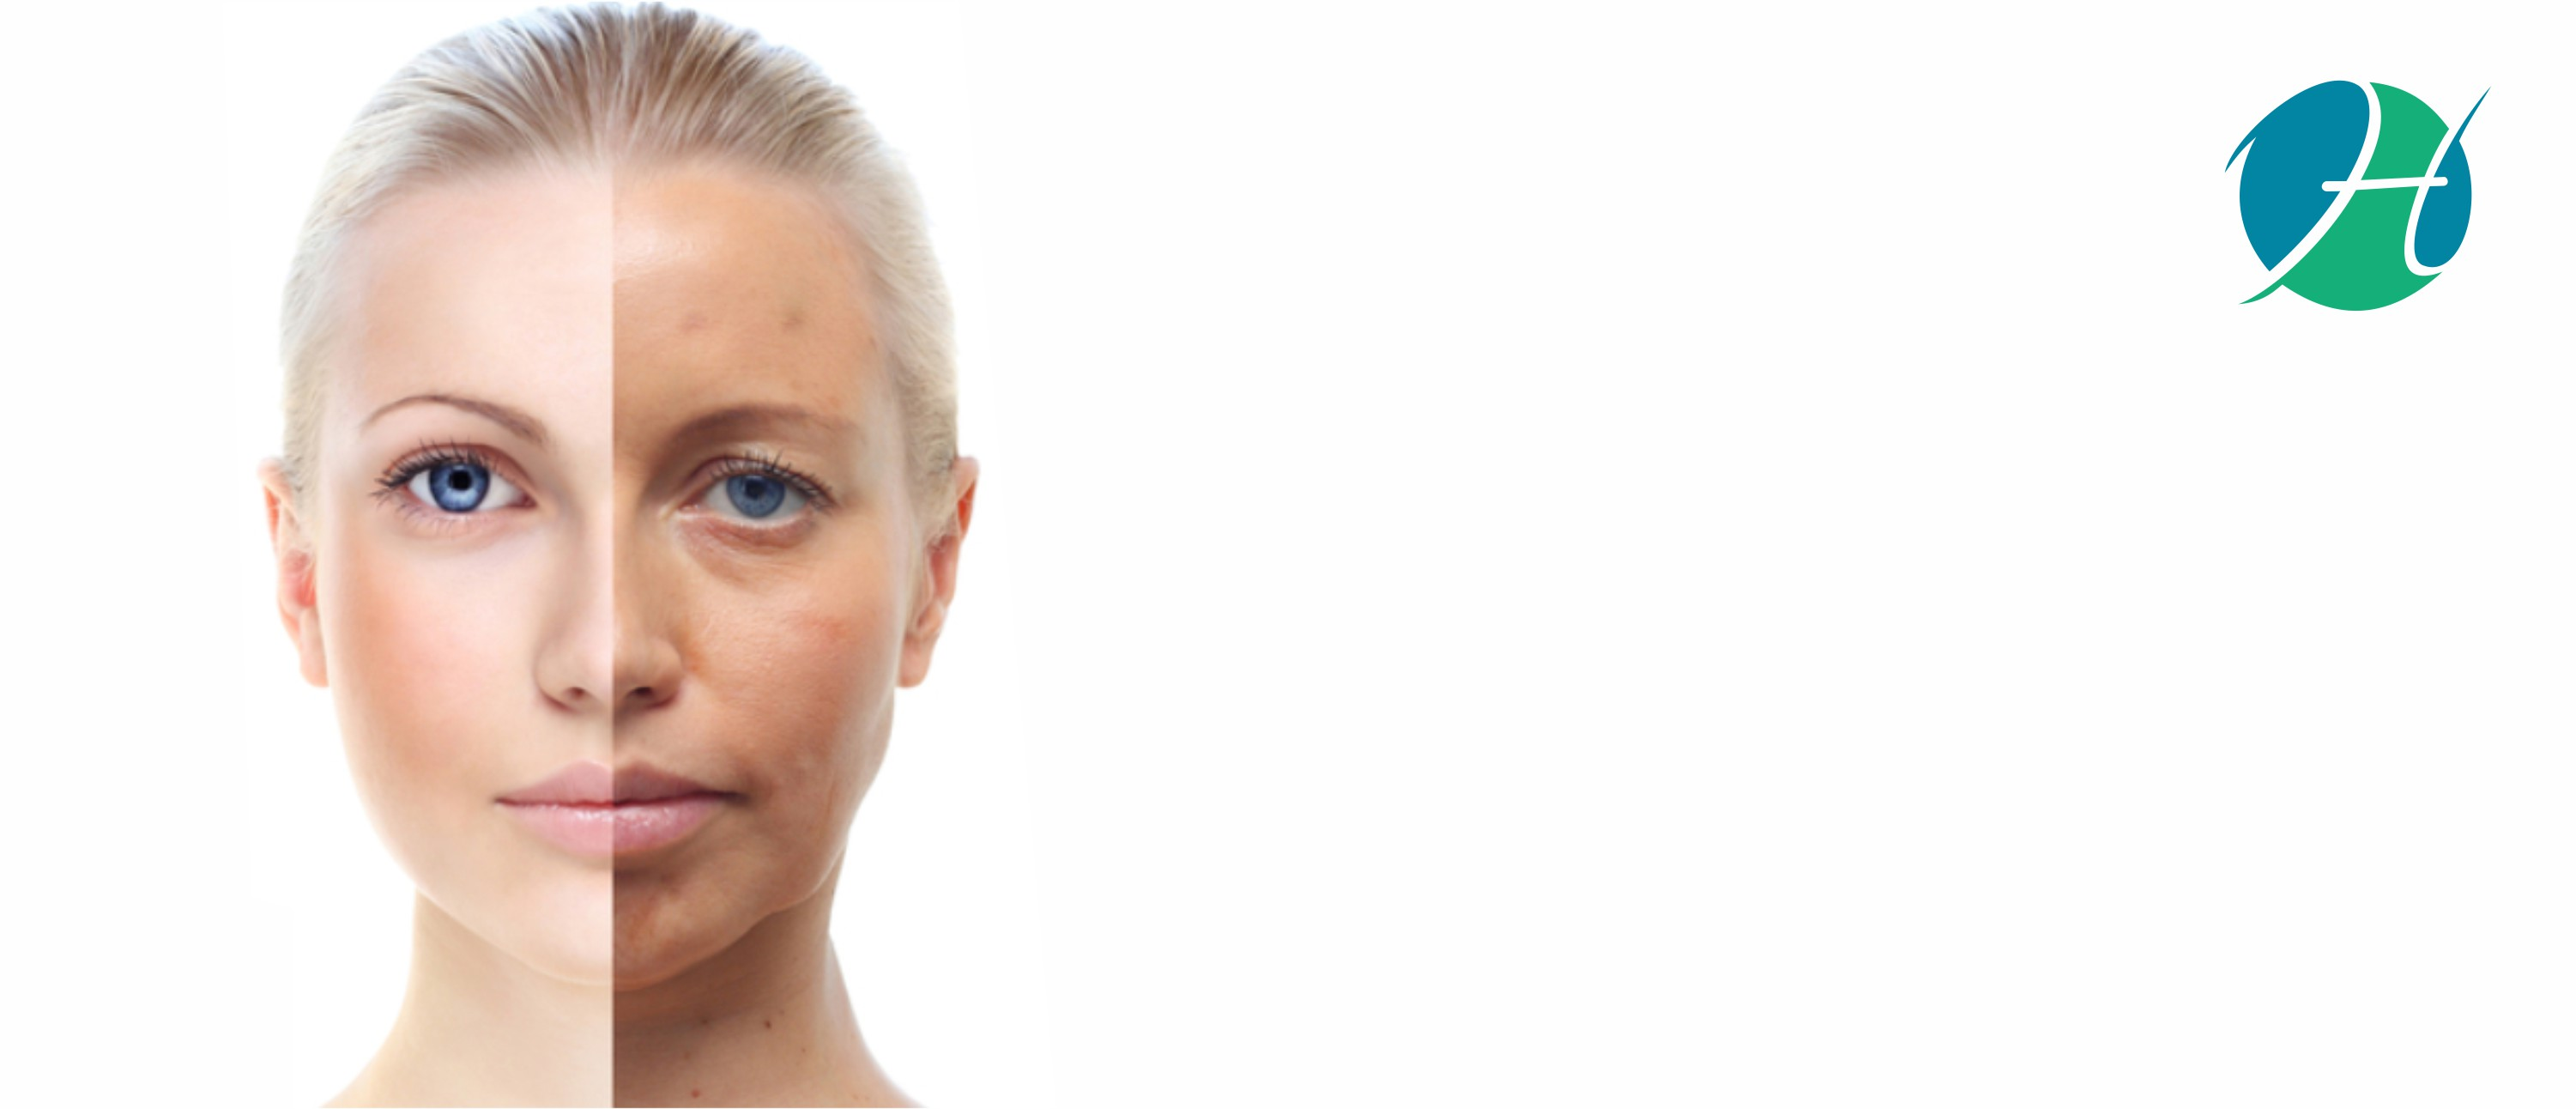 Aging Skin: How to Take Care !! | HealthSoul